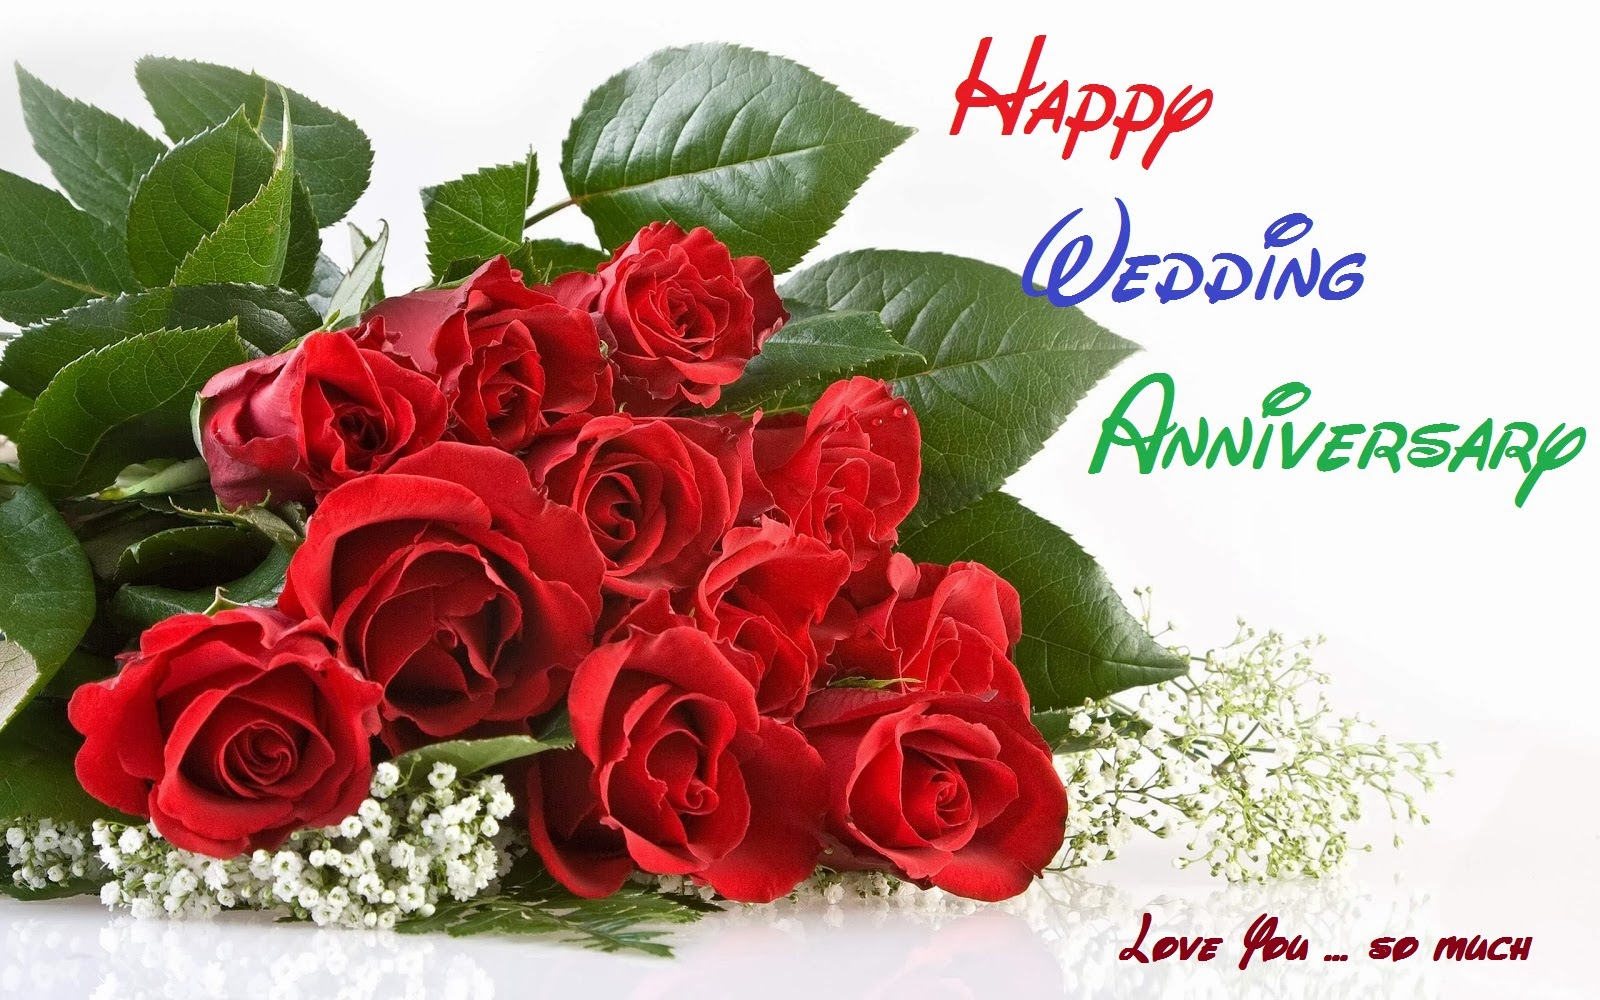 Wallpaper download marriage anniversary - Best Wedding Anniversary Live Photo S Hd Wallpapers Festival Chaska